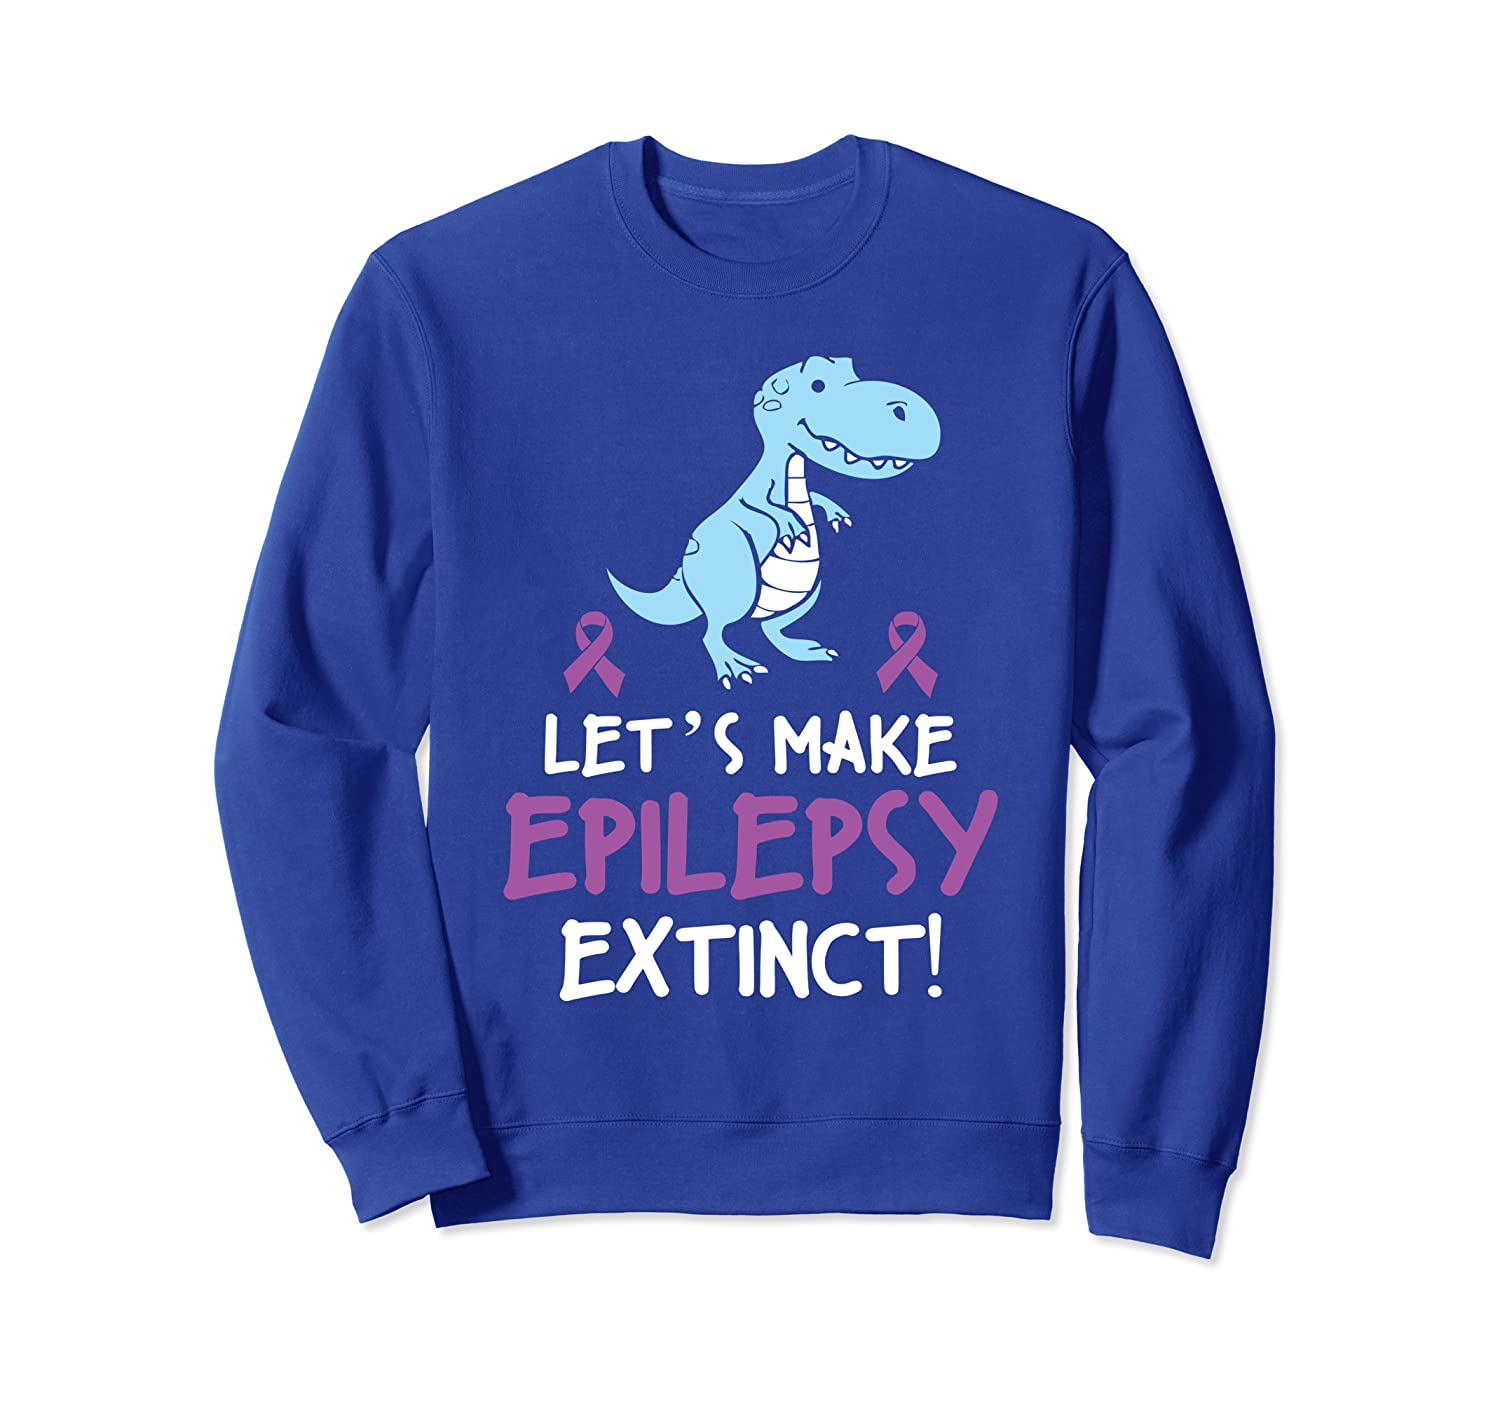 Cute Dinosaur Lets Make Epilepsy Extinct Sweatshirt